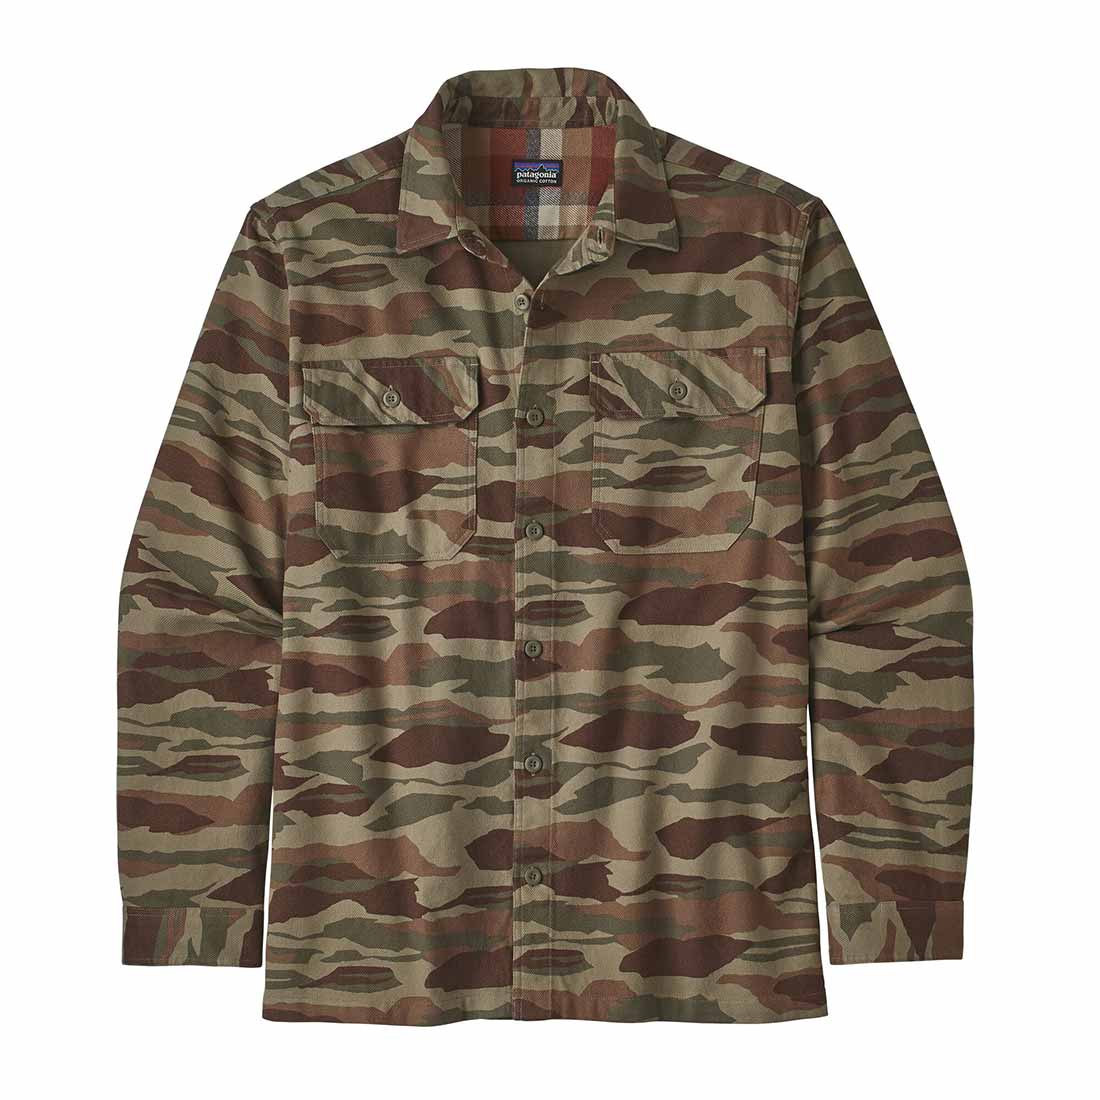 Patagonia Fjord Flannel Shirt - Bear Witness Camo